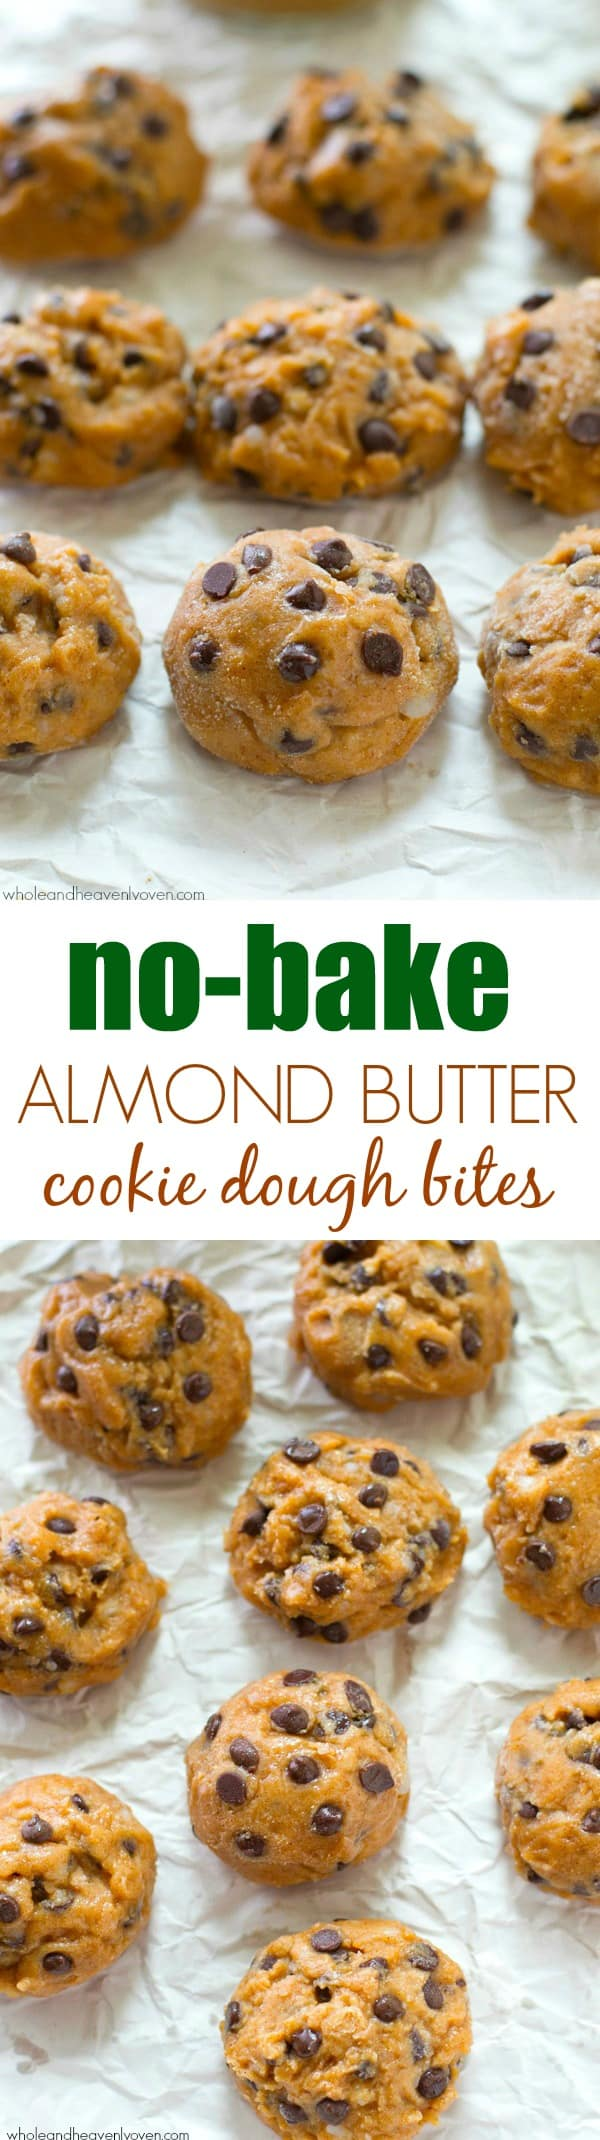 You won't be able to resist having 2 or 3 of these addicting chocolate-loaded cookie dough bites especially when it's hot outside! They whip up in minutes, so stock your freezer. @WholeHeavenly